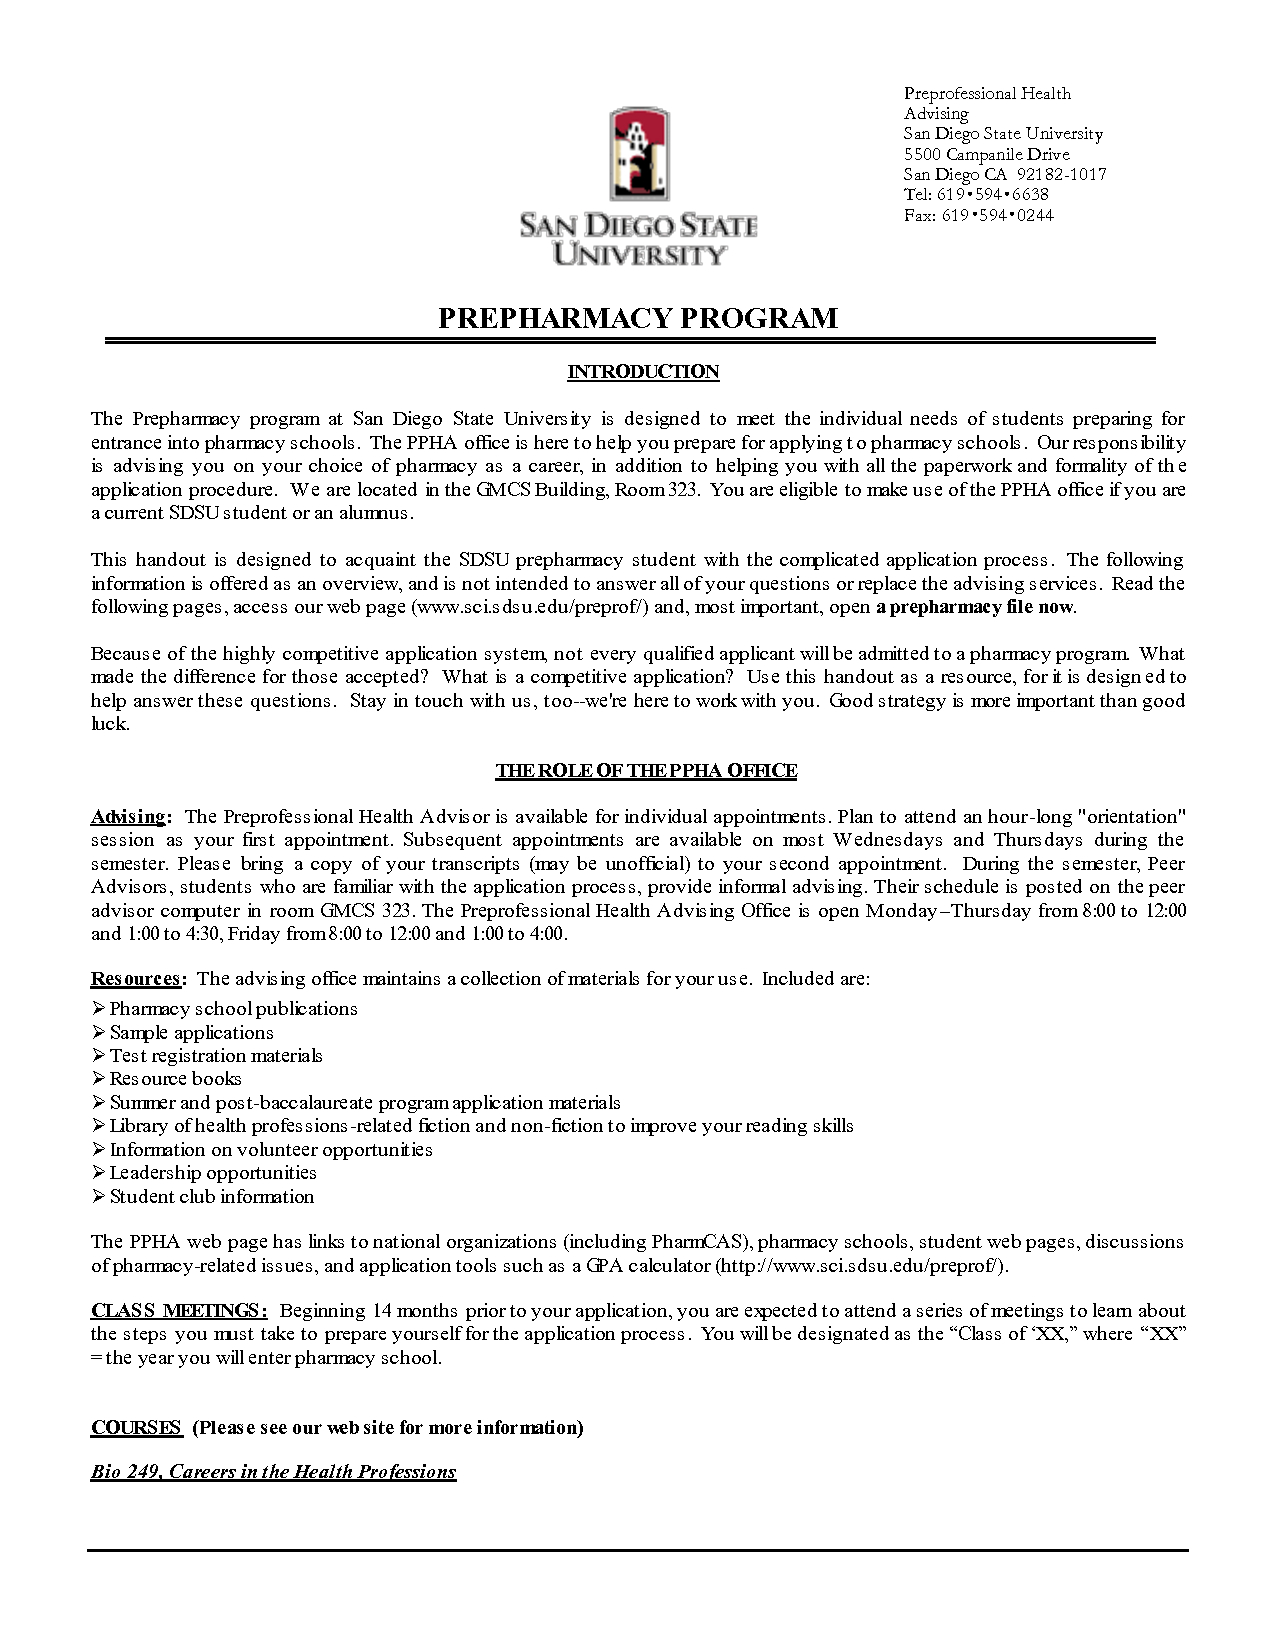 generic letter of recommendation template Collection-pharmacy school personal statement best template collection pharmacy school personal statement od1iqbfm 18-s